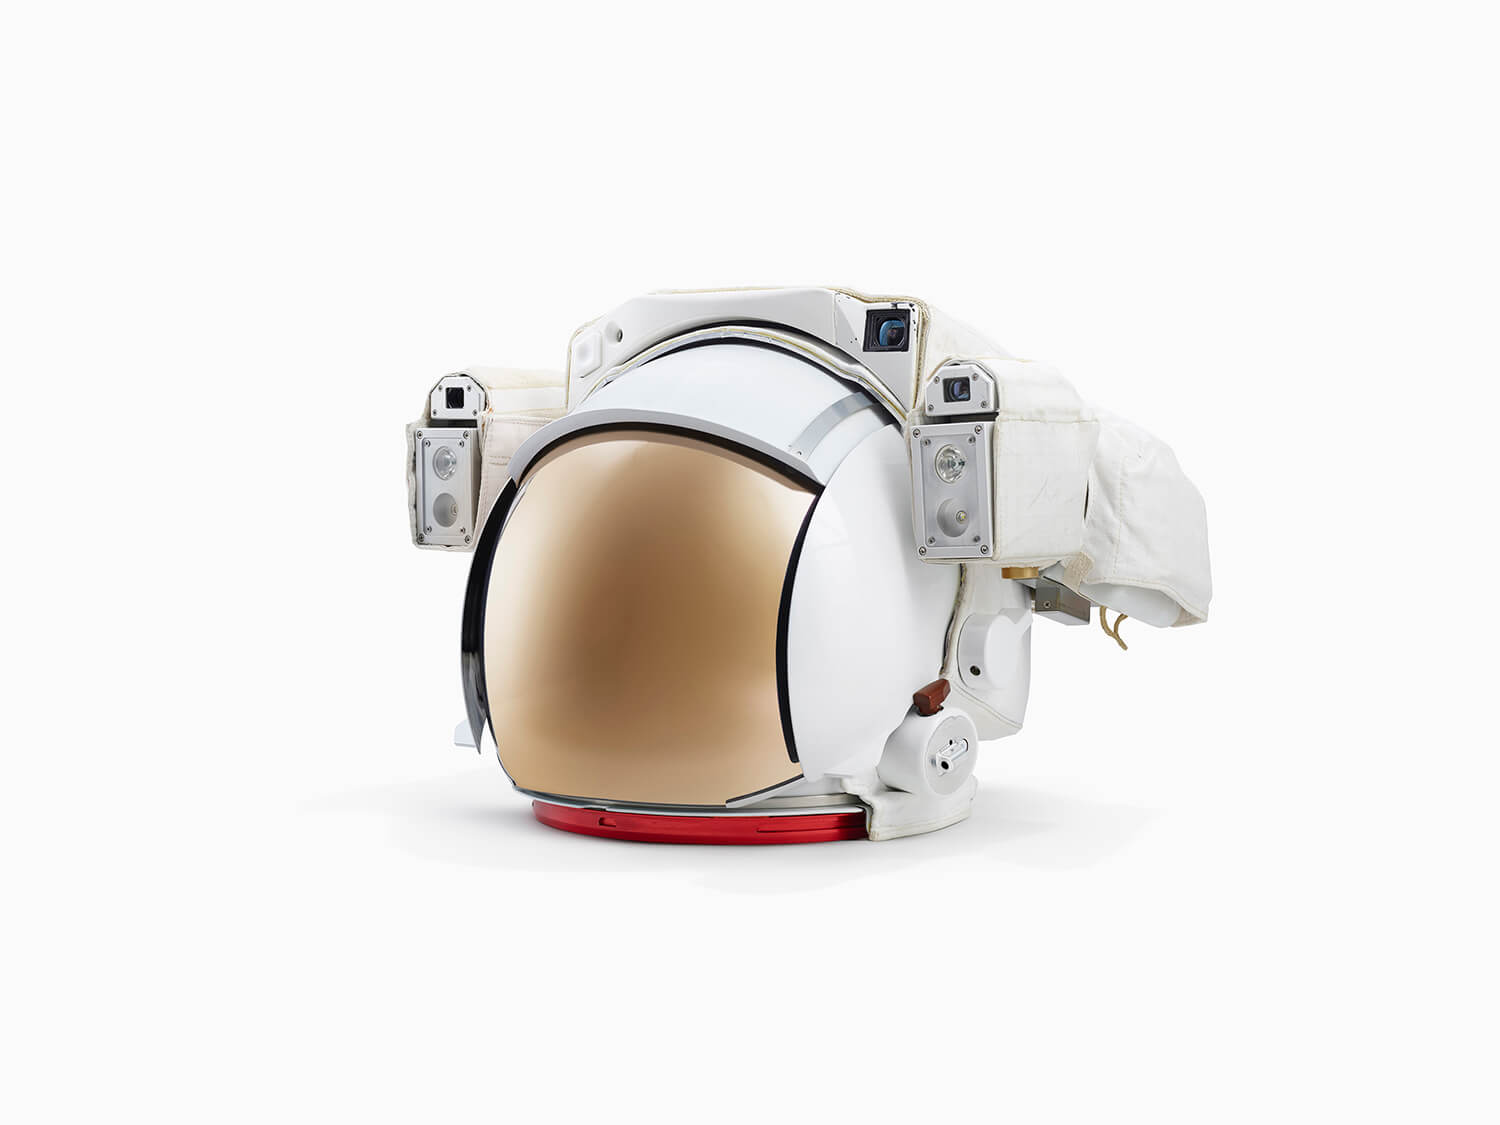 EXTRAVEHICULAR MOBILITY UNIT (EMU) SPACE SUIT HELMET - JOHNSON SPACE CENTRE